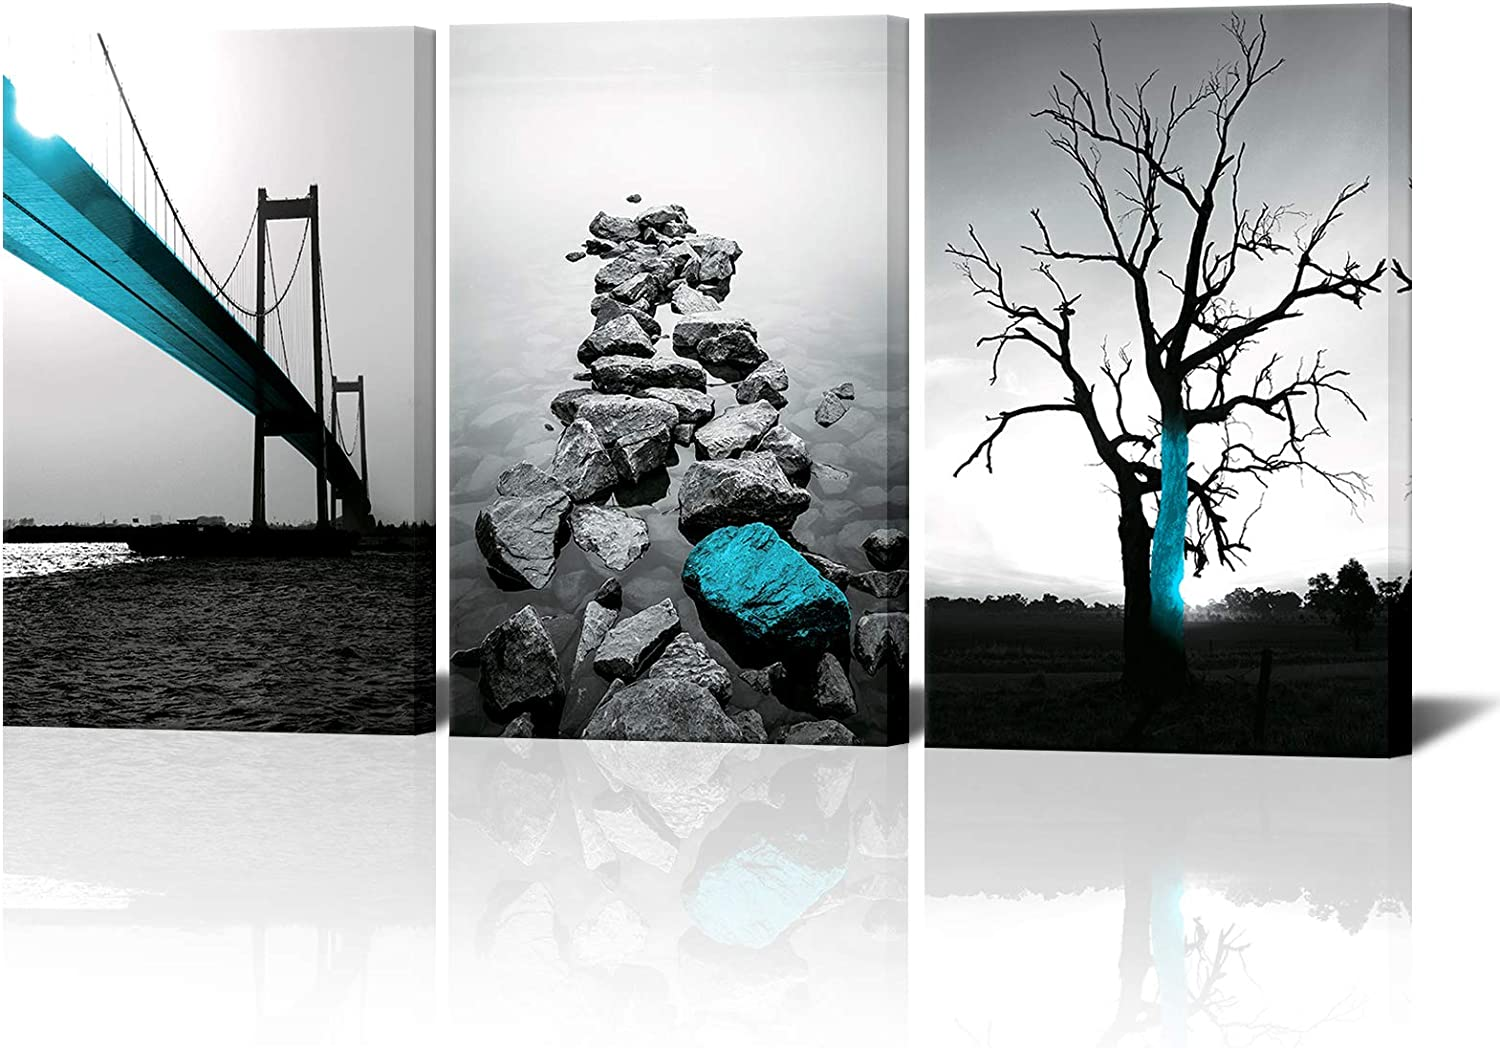 Biuteawal - Black and White Tree Canvas Wall Art Blue Bridge Picture Peaceful Stone Lake Landscape Painting Print on Canvas Contemporary Artwork for Home Office Living Room Bedroom Decor